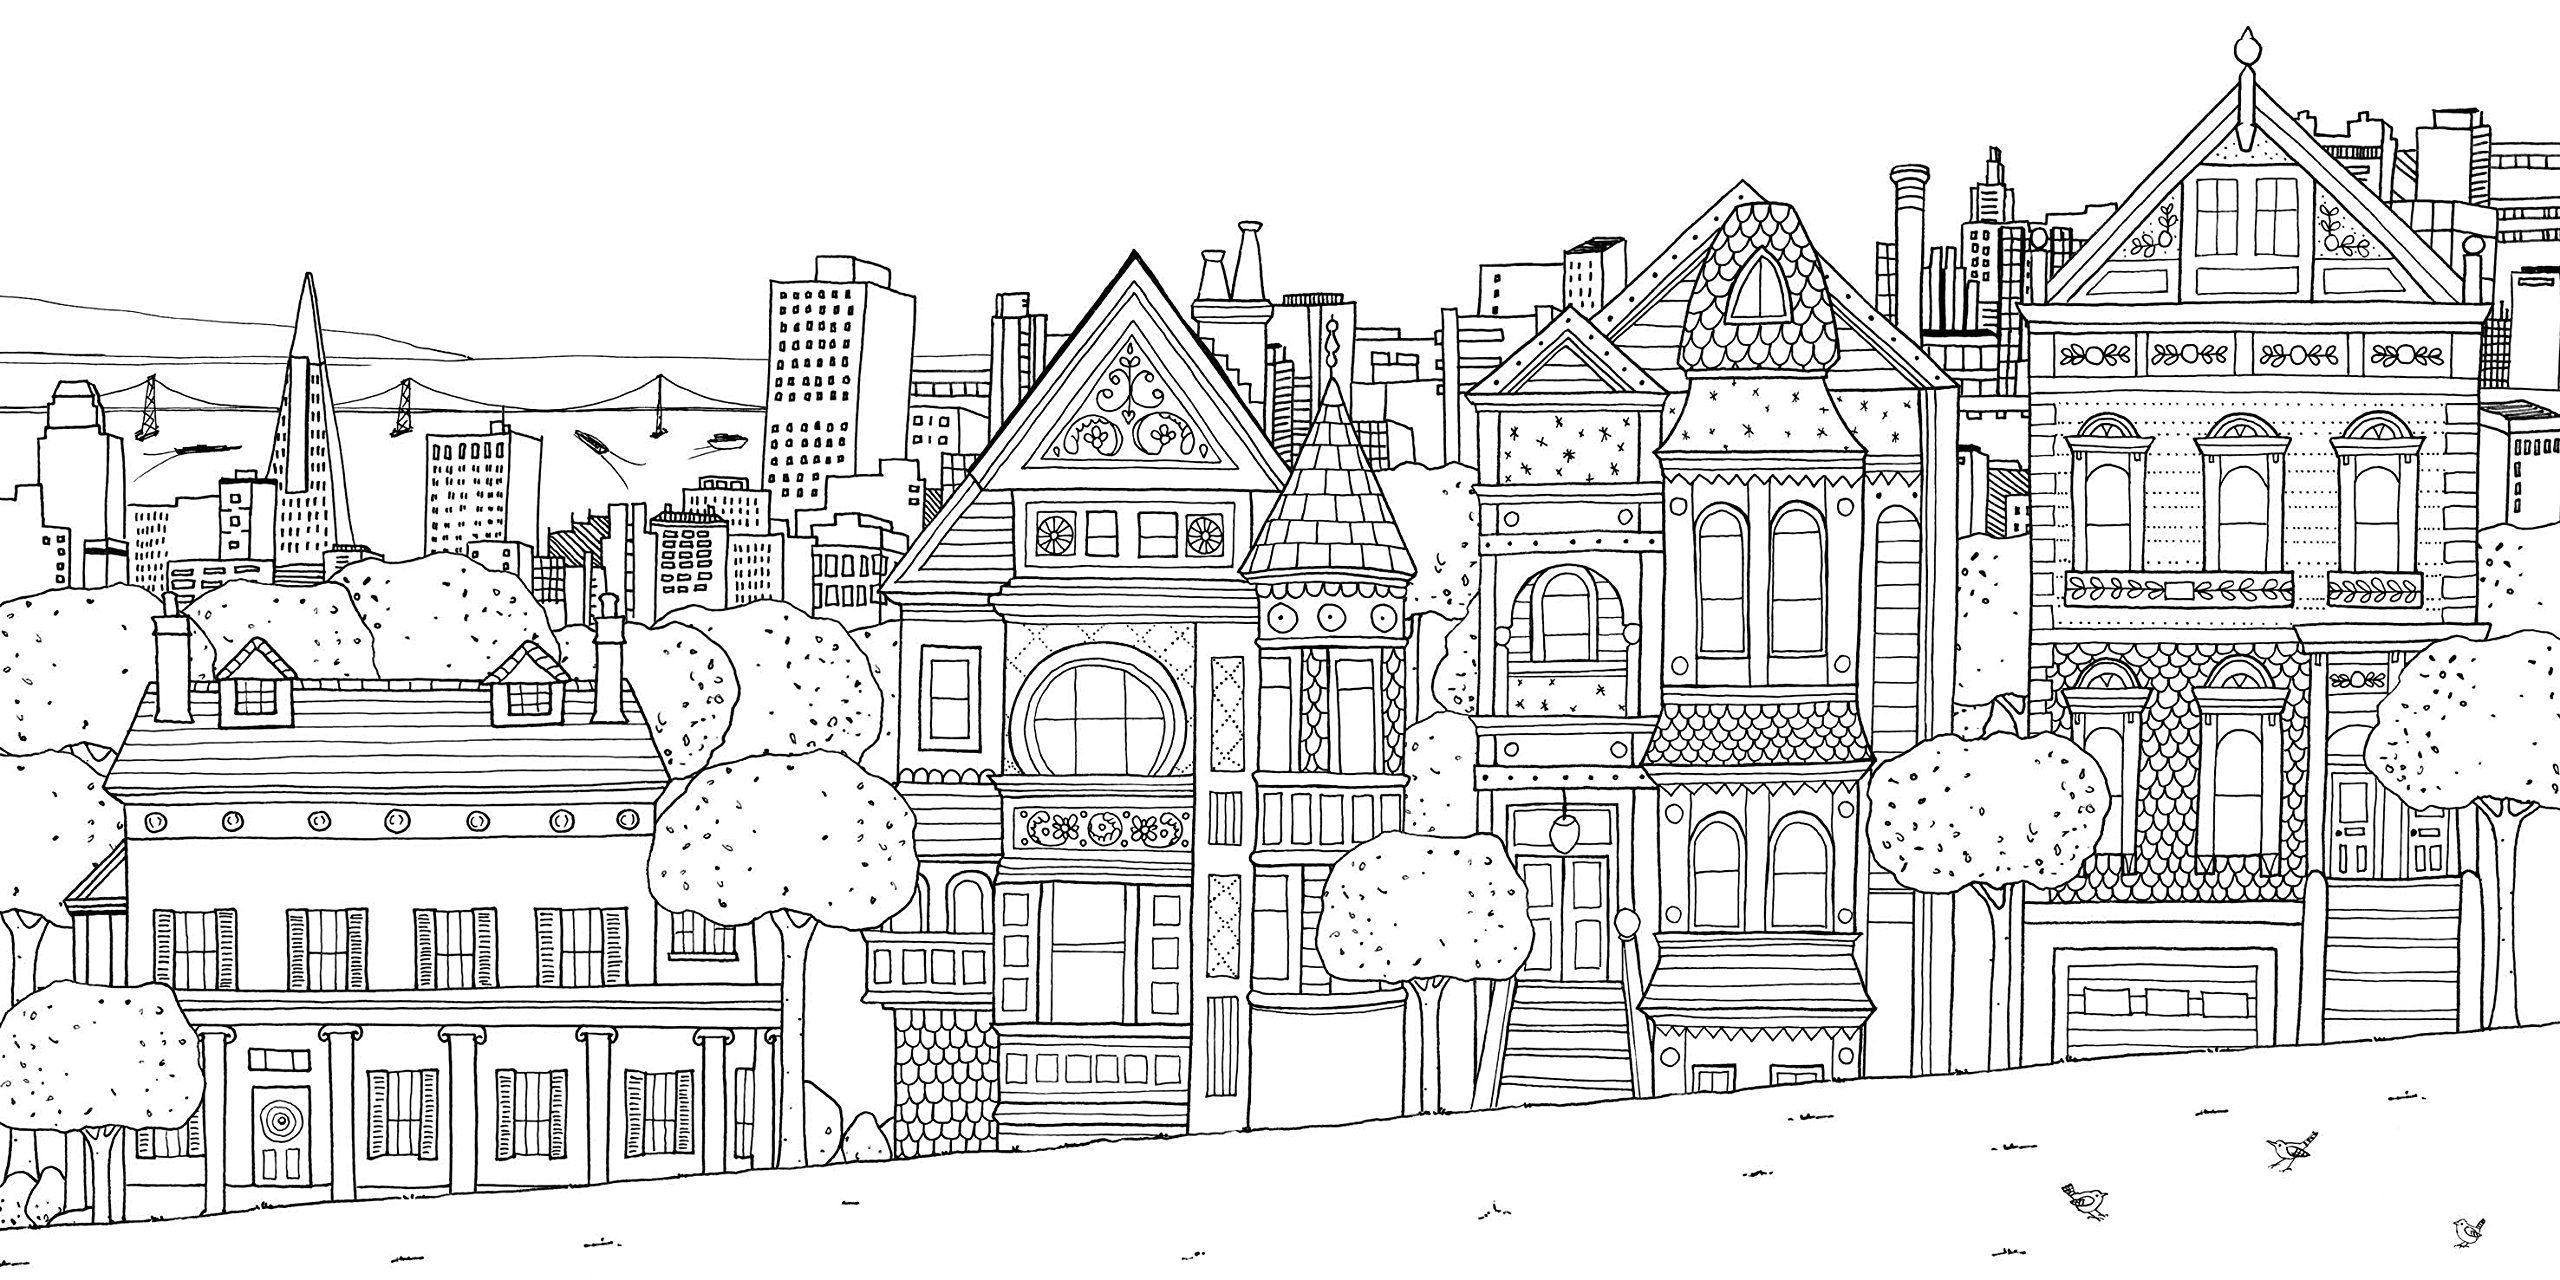 Colouring books for adults melbourne - London Colouring Book Emma Farrarons Illustration Art Direction Art Pinterest Colour Book Illustration Art And Illustrations